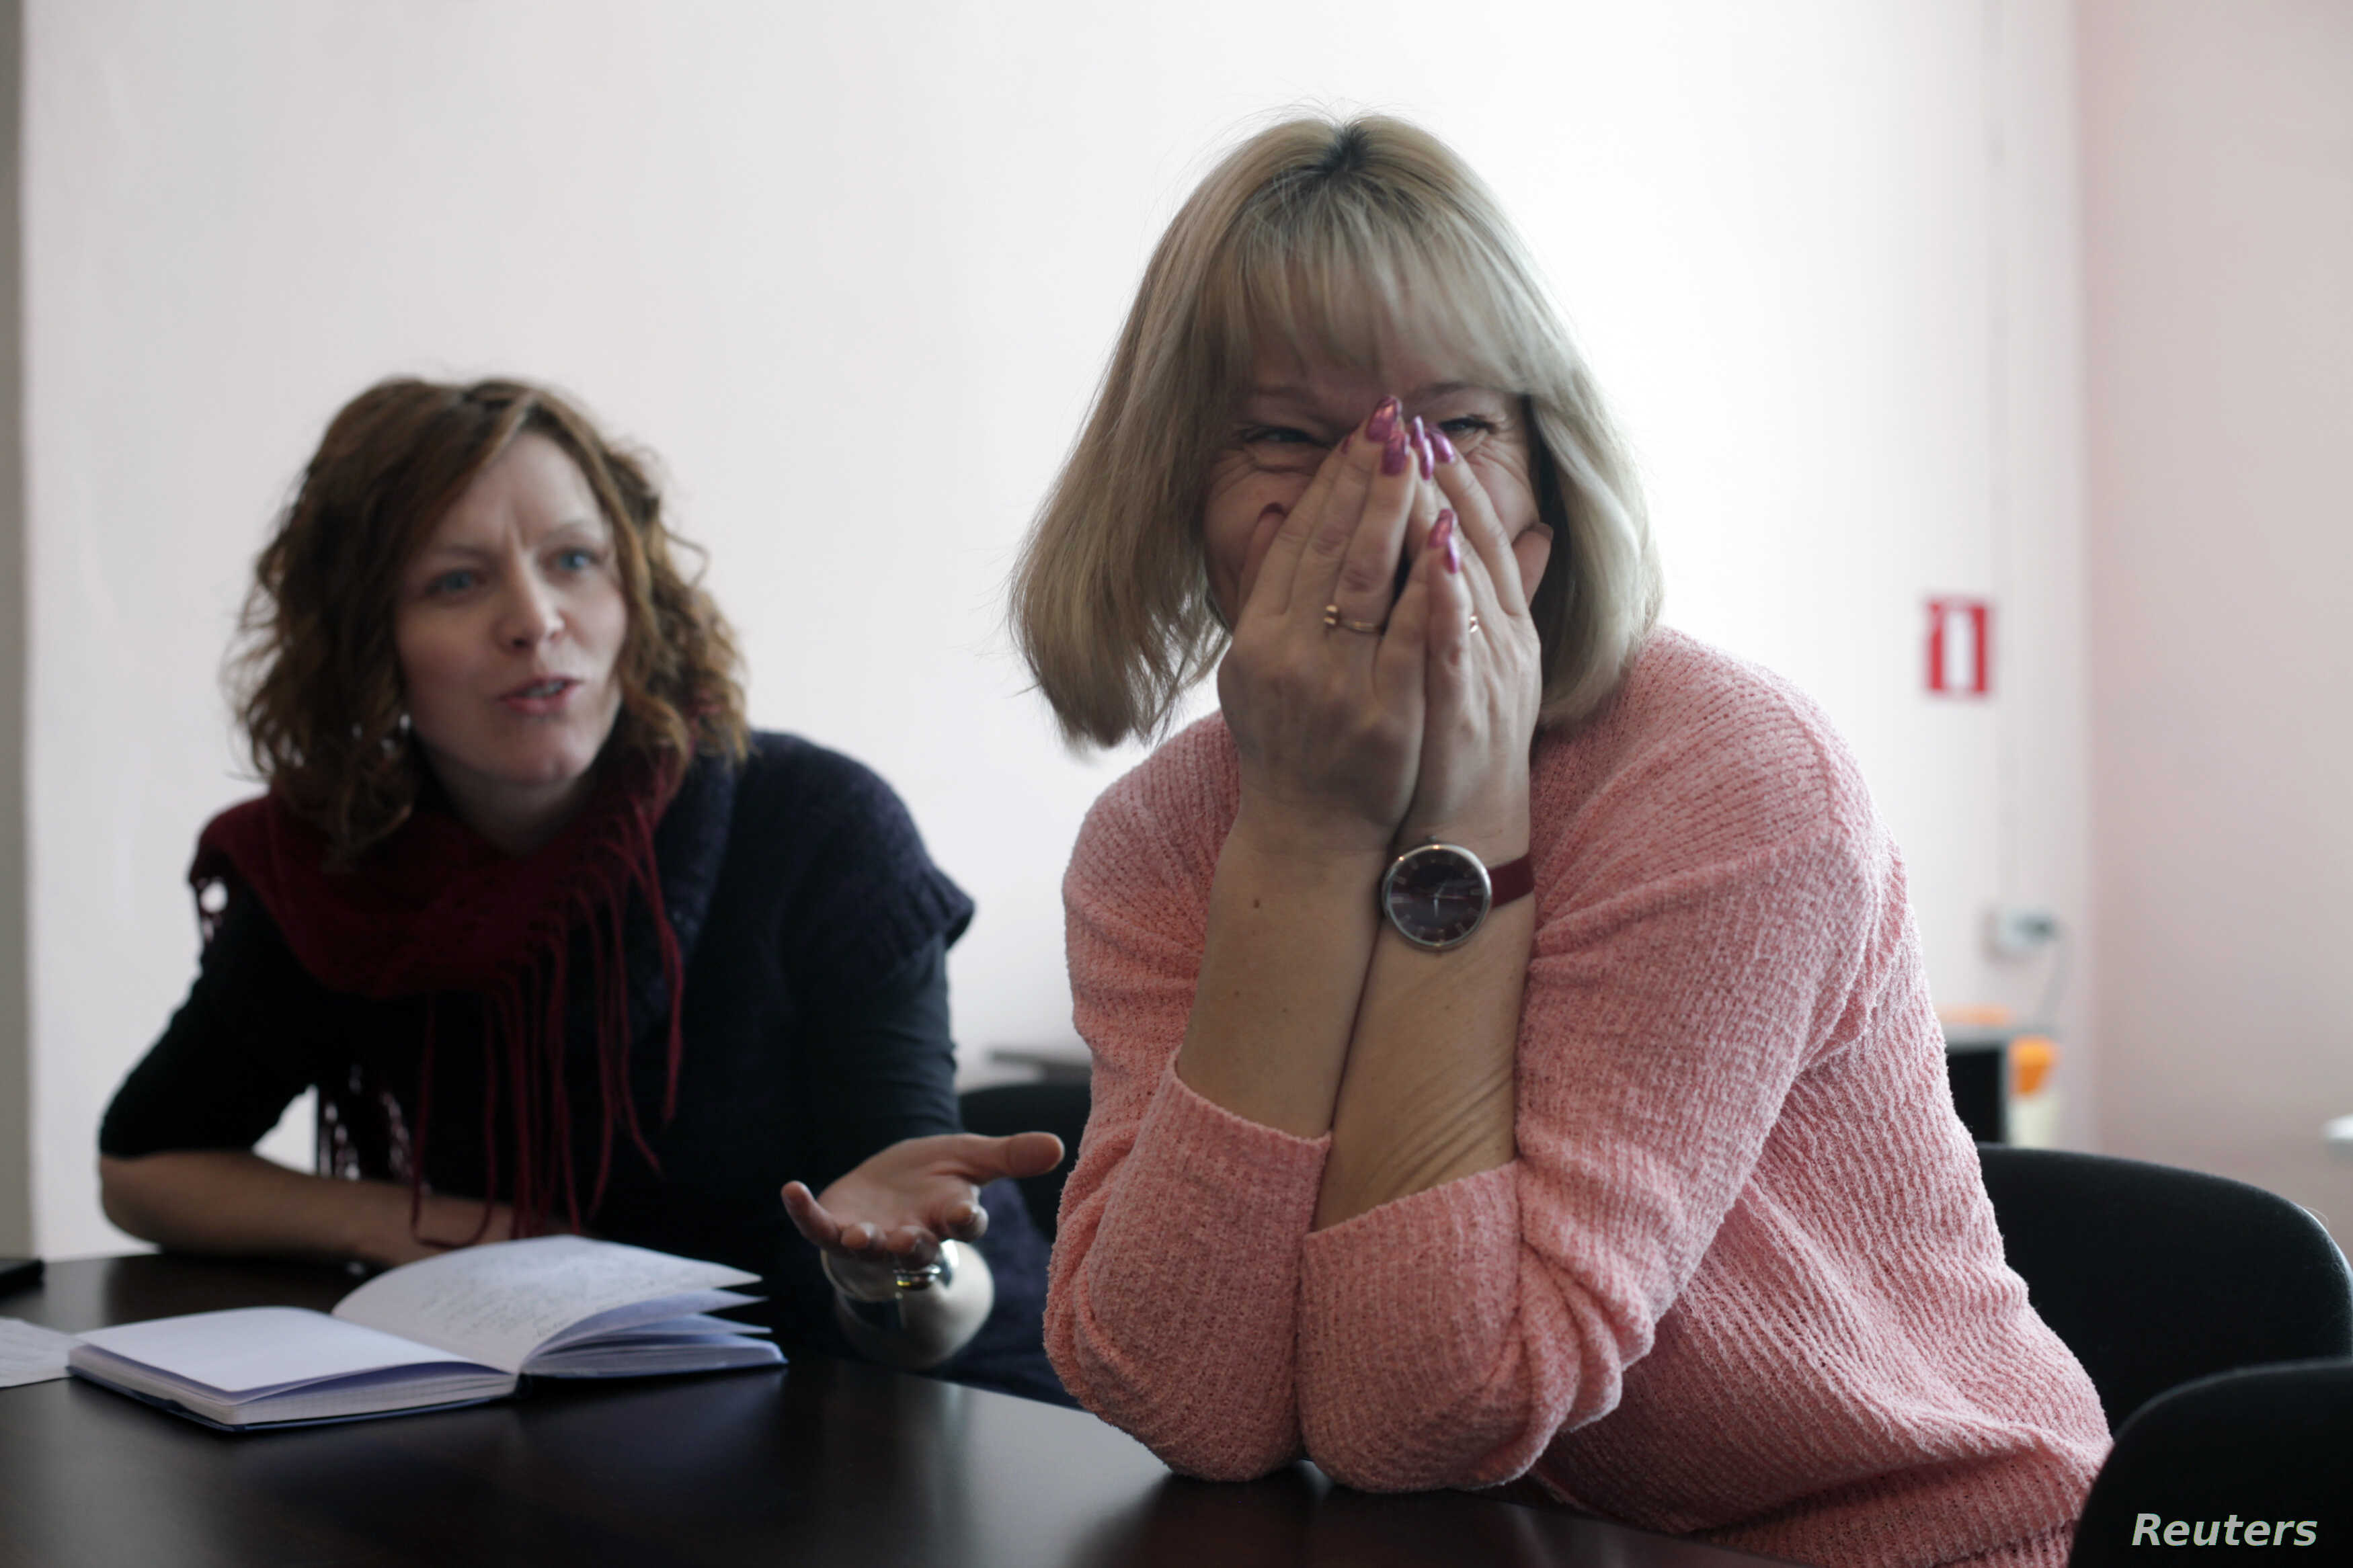 Biruta Kadakovska (R) reacts as she talks with migration researcher social anthropologist Dace Dzenovska during an interview in Malnava near Karsava about 300 km (186 miles) east from capital Riga, Latvia, Feb. 29, 2012.